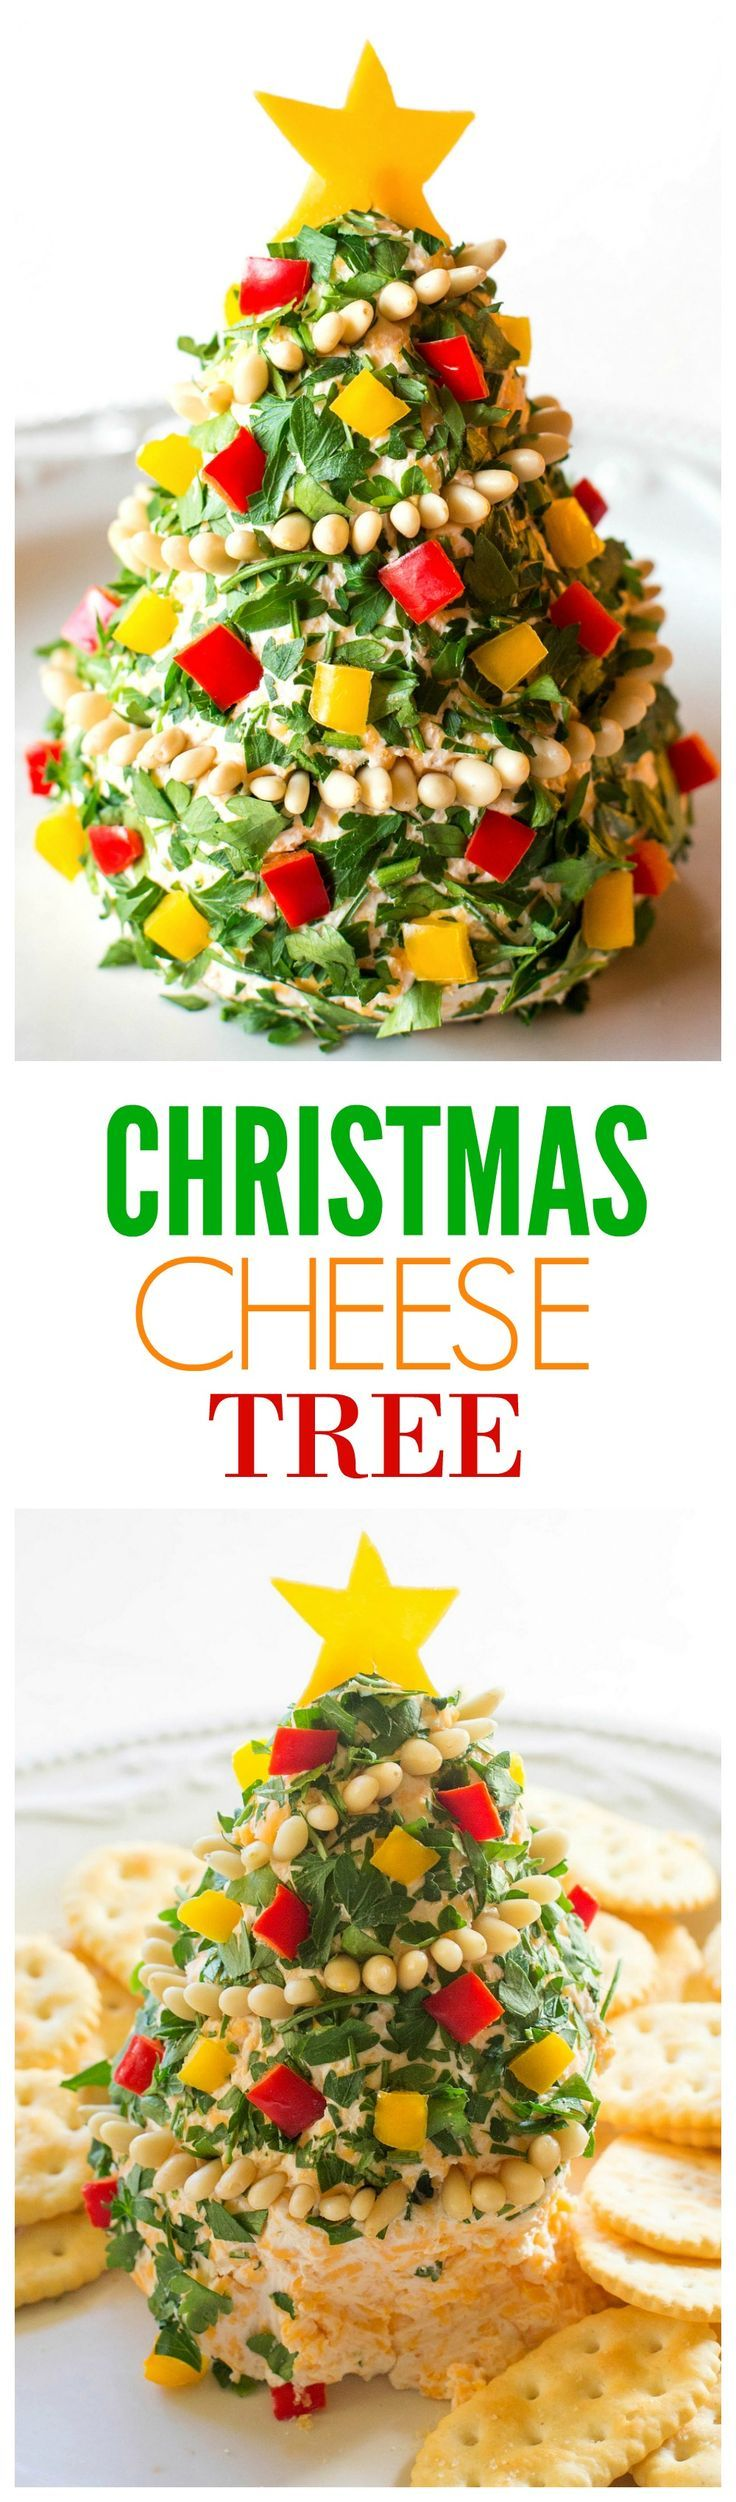 Christmas Cheese Tree - super simple yet impressive cheese ball shaped in a tree! http://the-girl-who-ate-everything.com